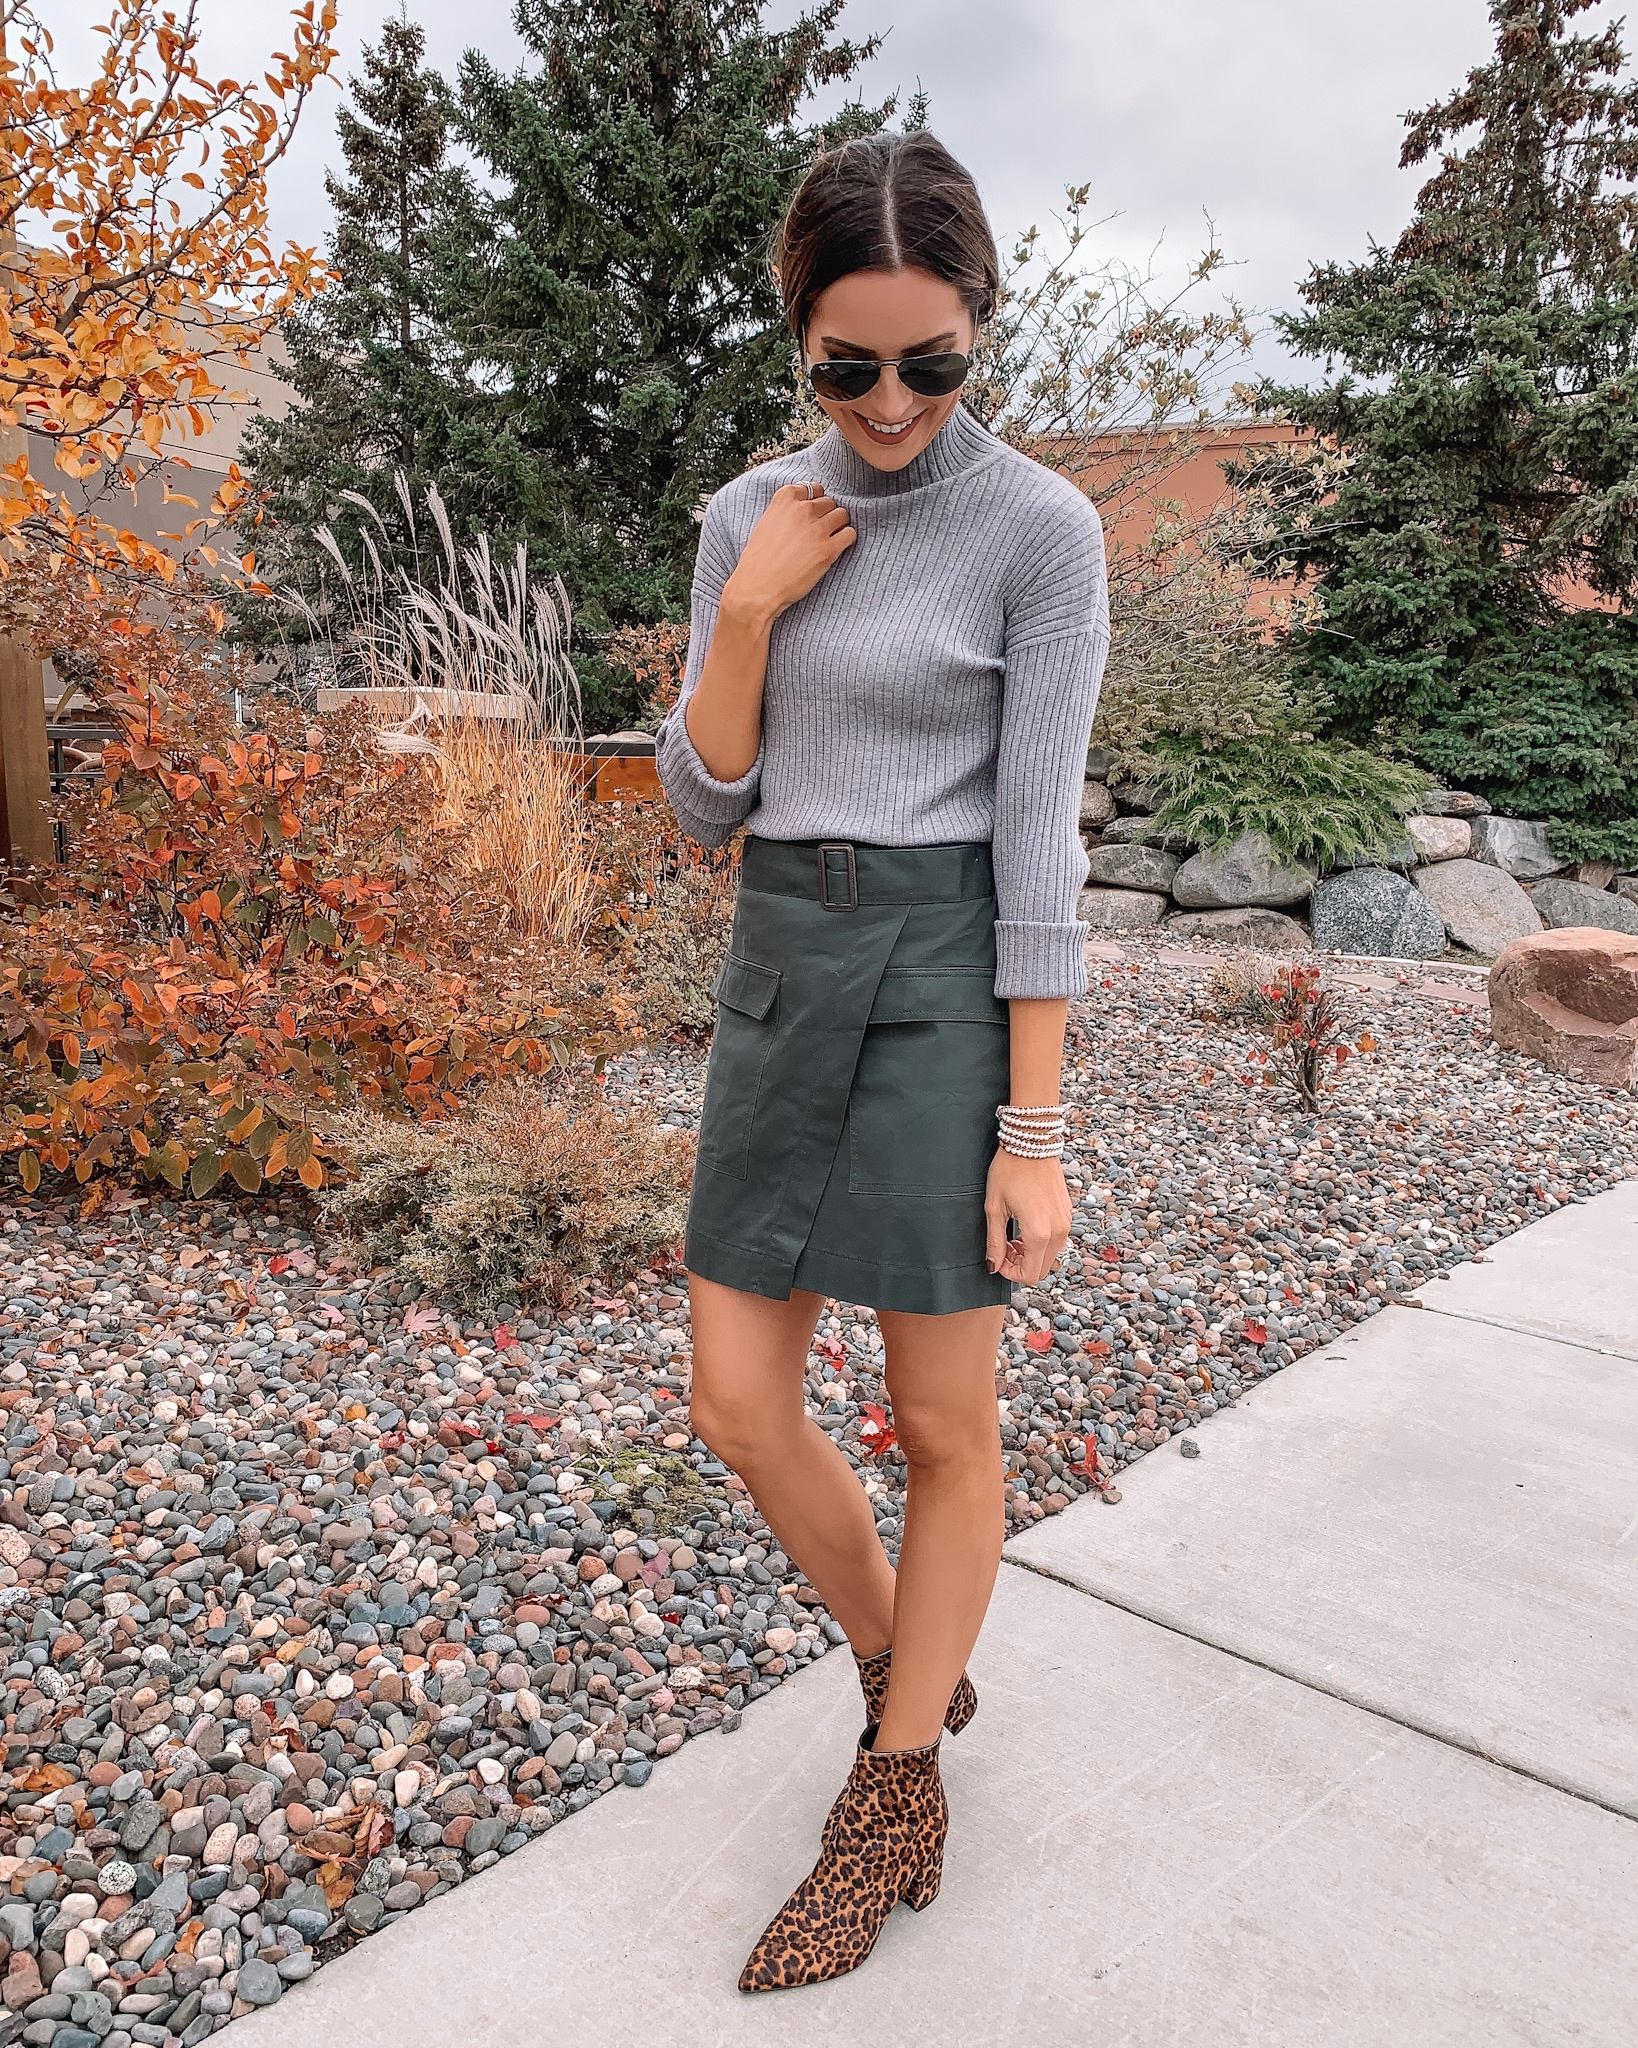 banana republic, women's outfit, workwear, casual chic outfit, utility skirt, fall fashion